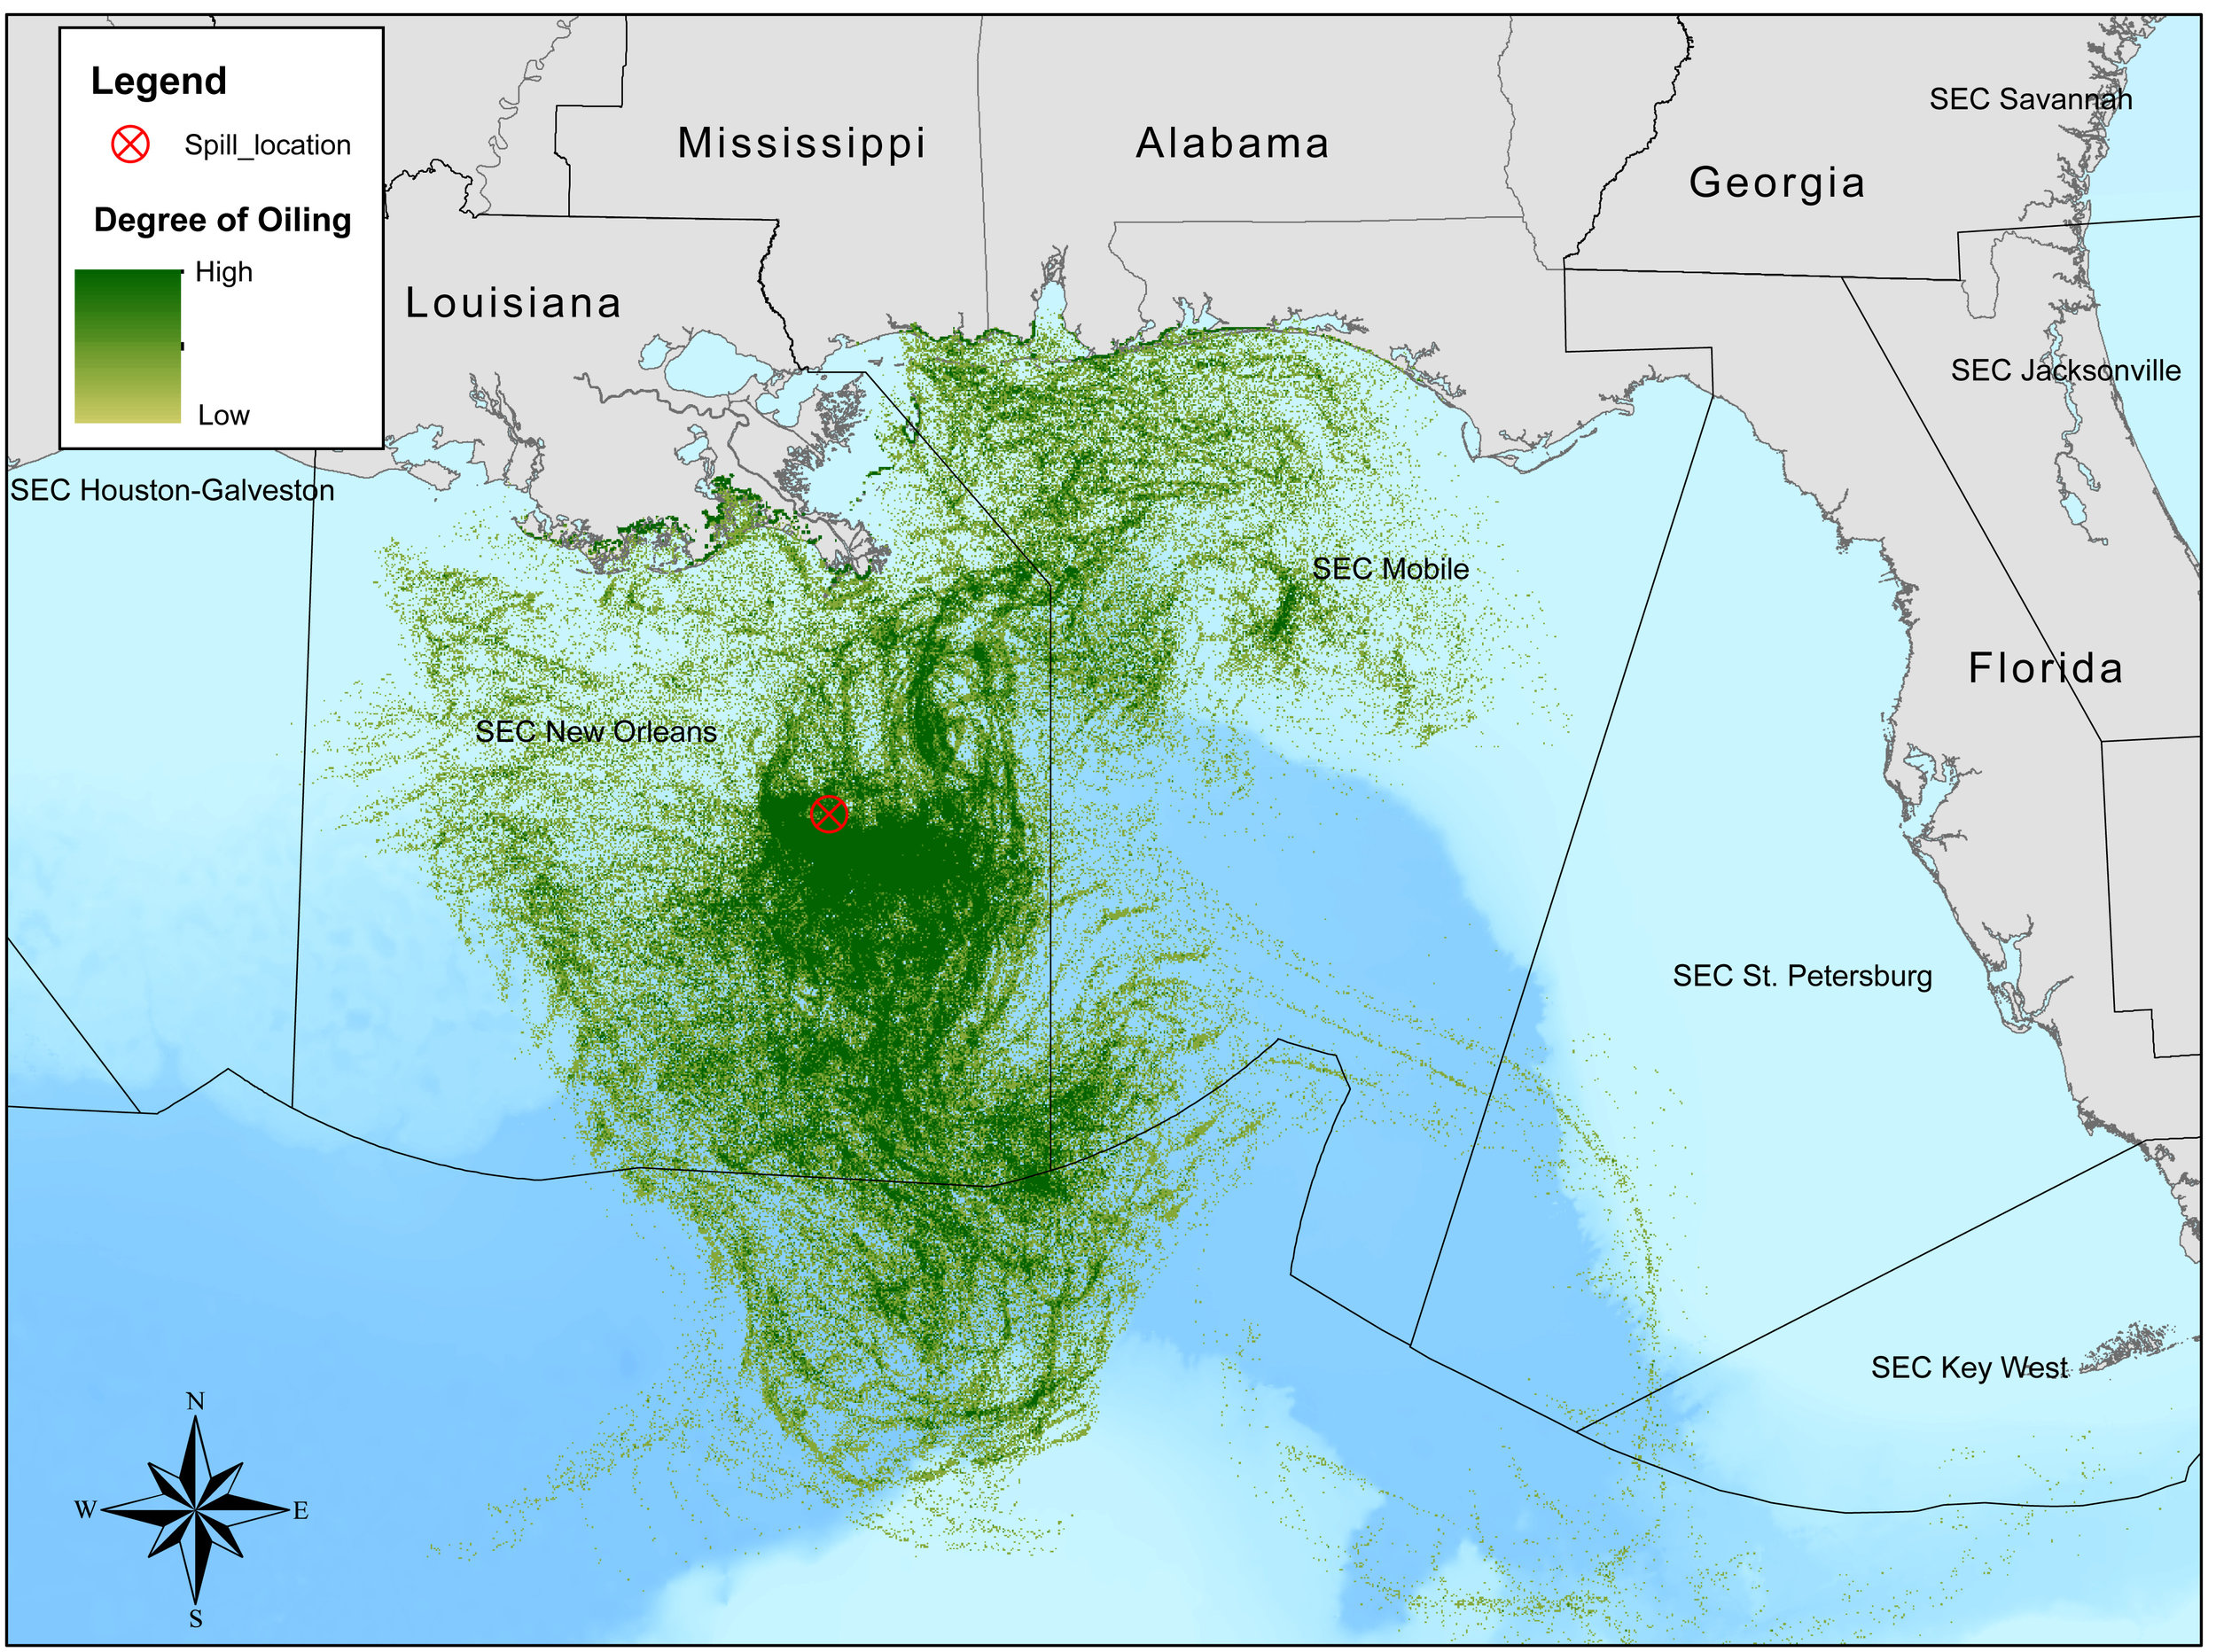 Spatial extent of an oil spill simulation in the Gulf. Degree of oiling is measured as the amount of oil that passes through one 1km x 1km pixel over the duration of the simulated spill. The spill simulation was performed using the BLOSOM oil spill model.